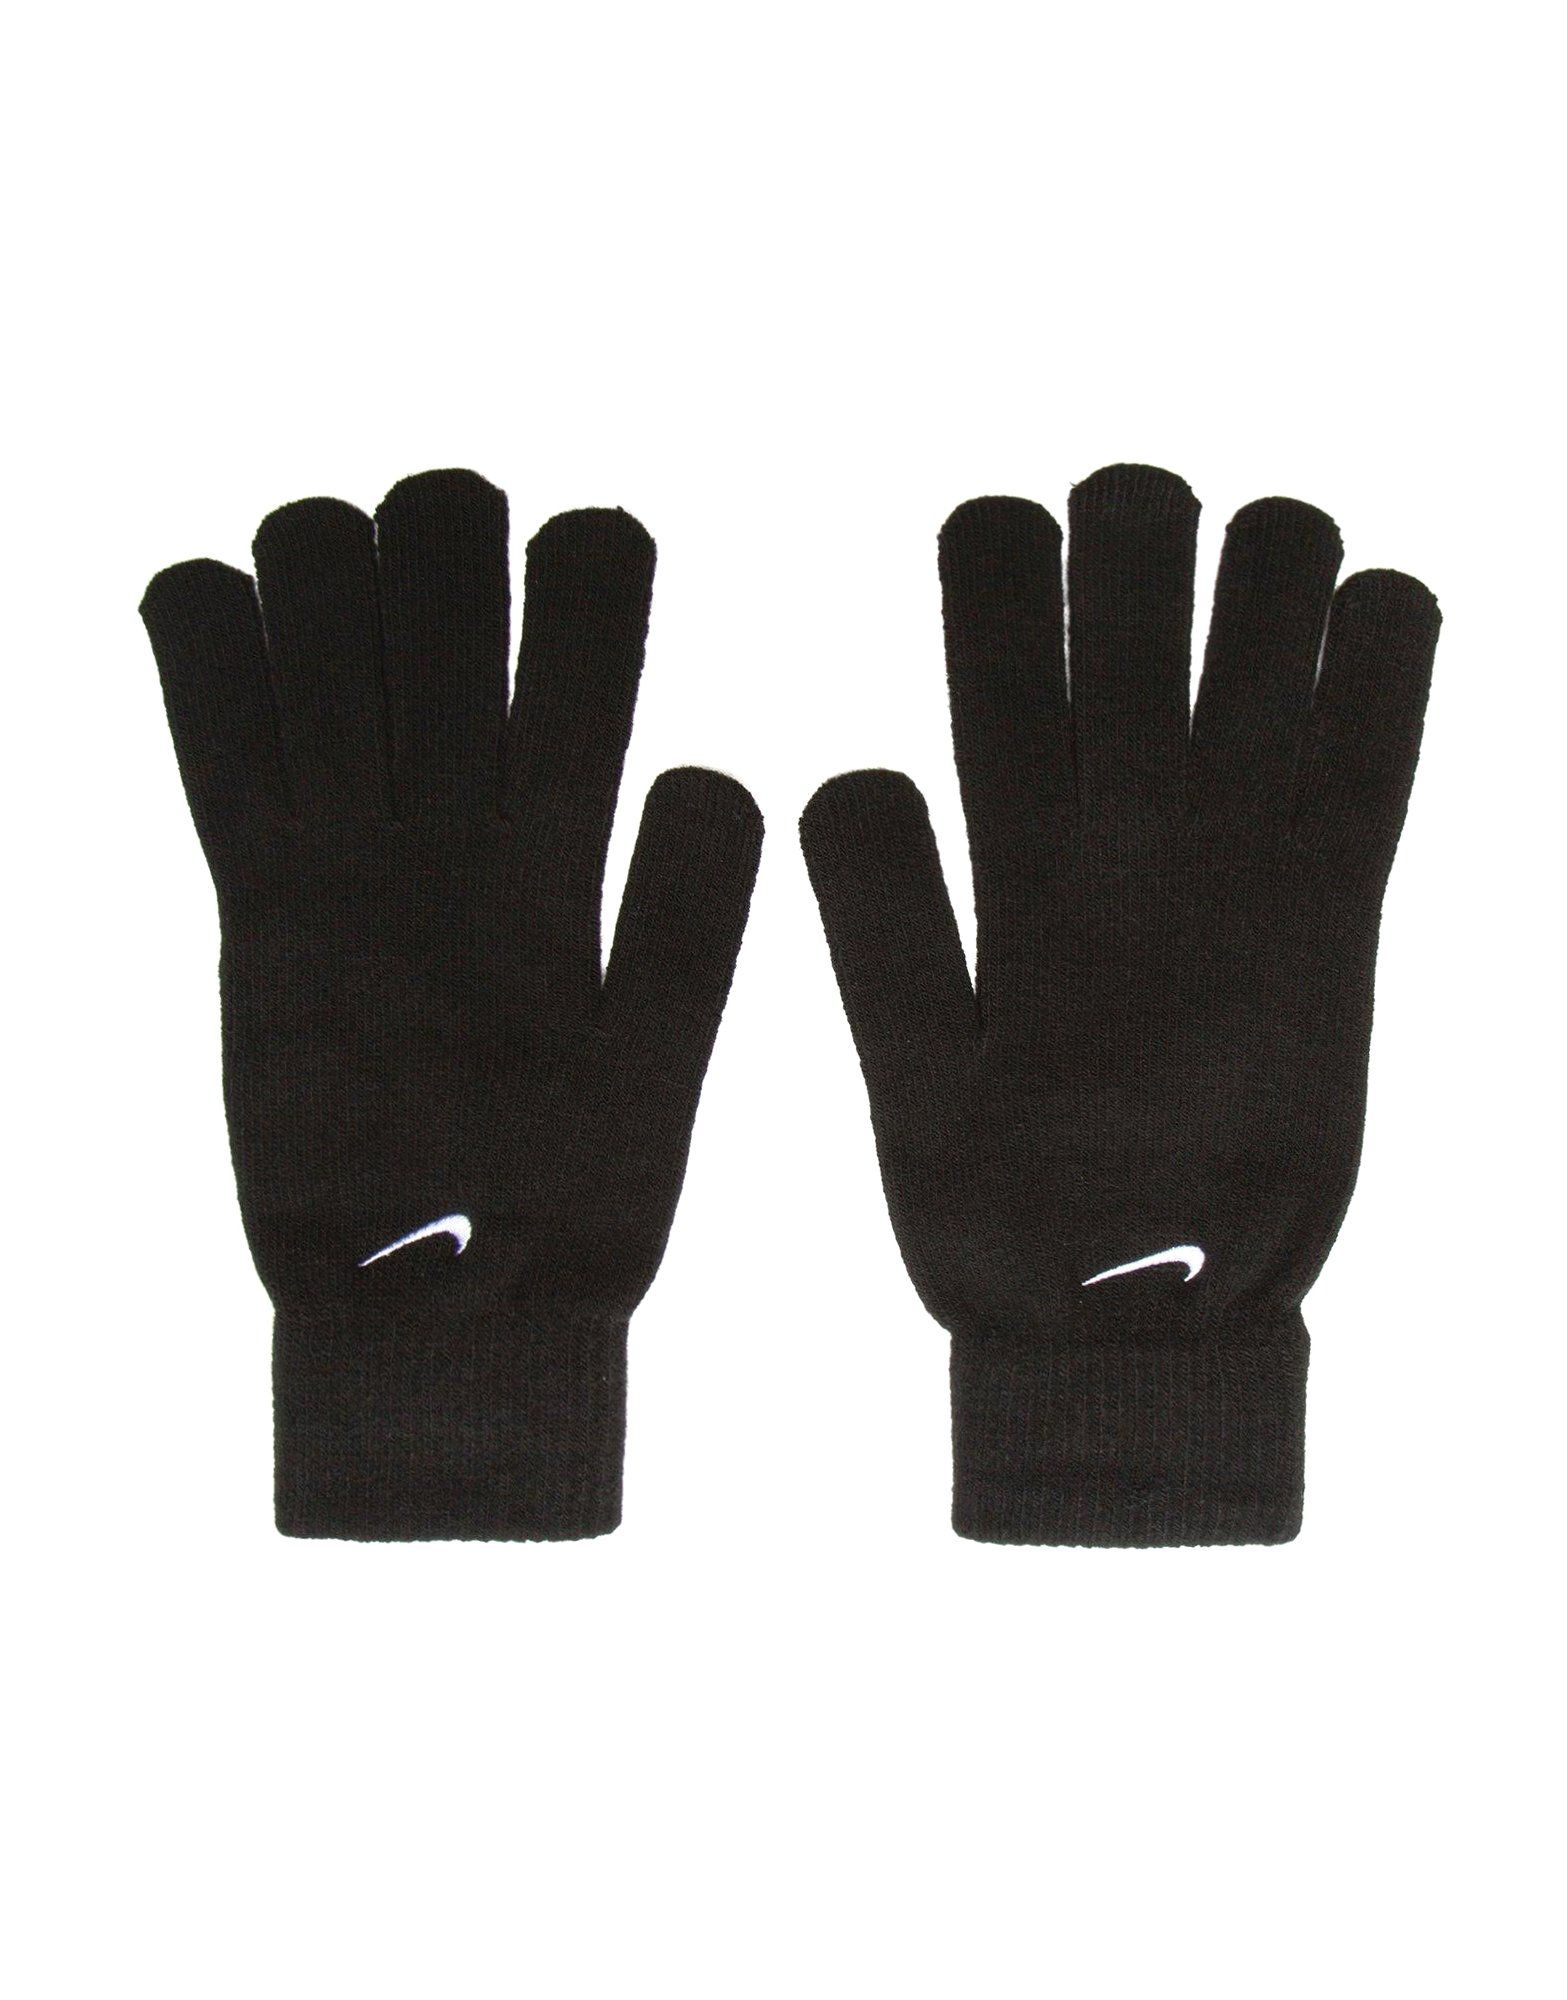 Nike Knit Gloves